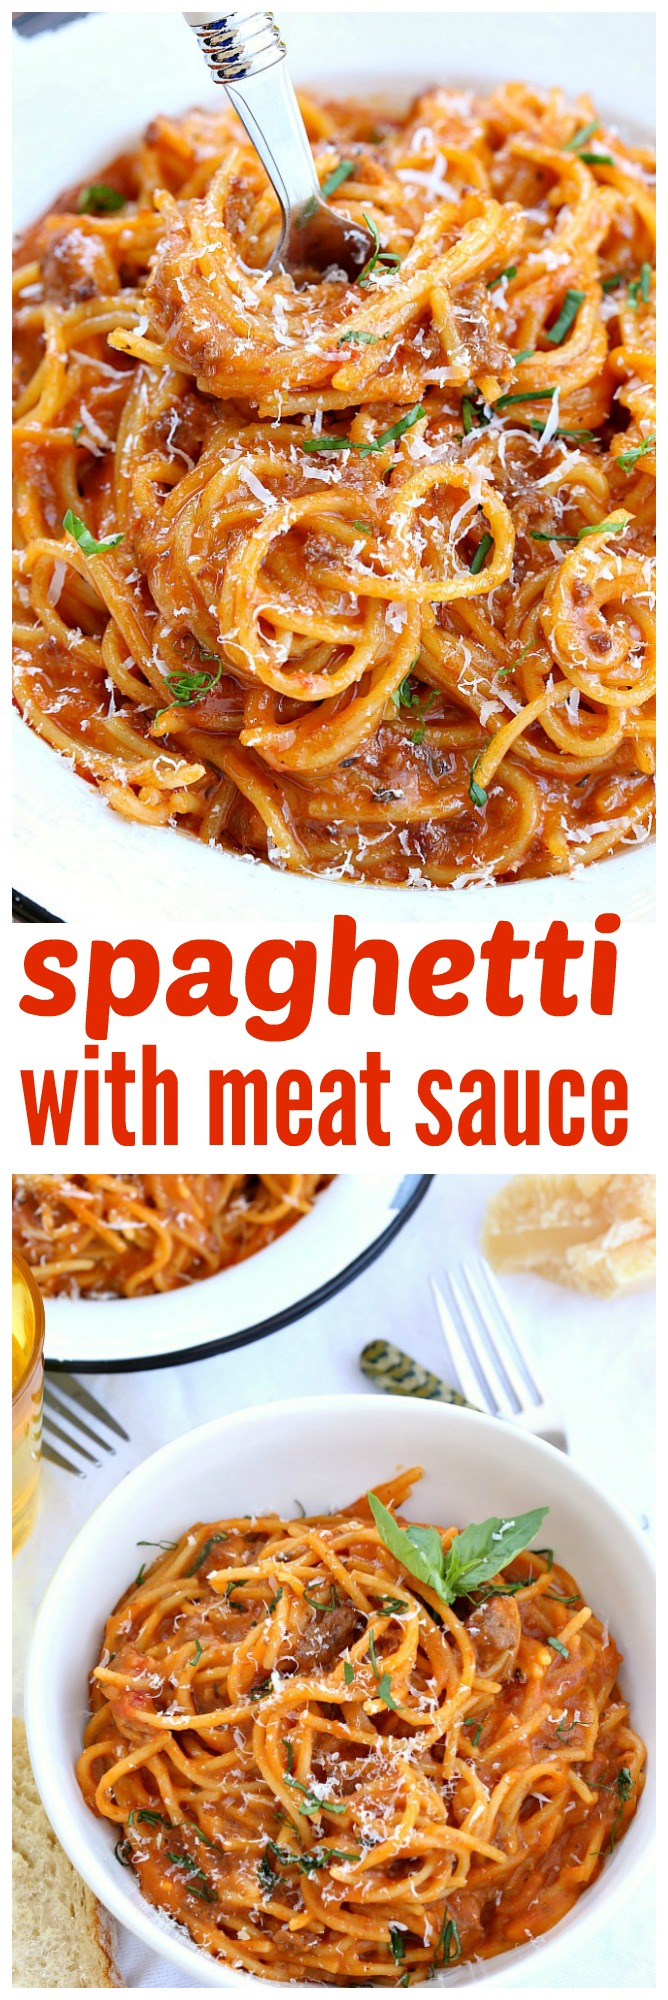 The easiest pasta dish you'll ever make, this flavorful spaghetti with meat sauce comes together in no time making it perfect for those busy nights.